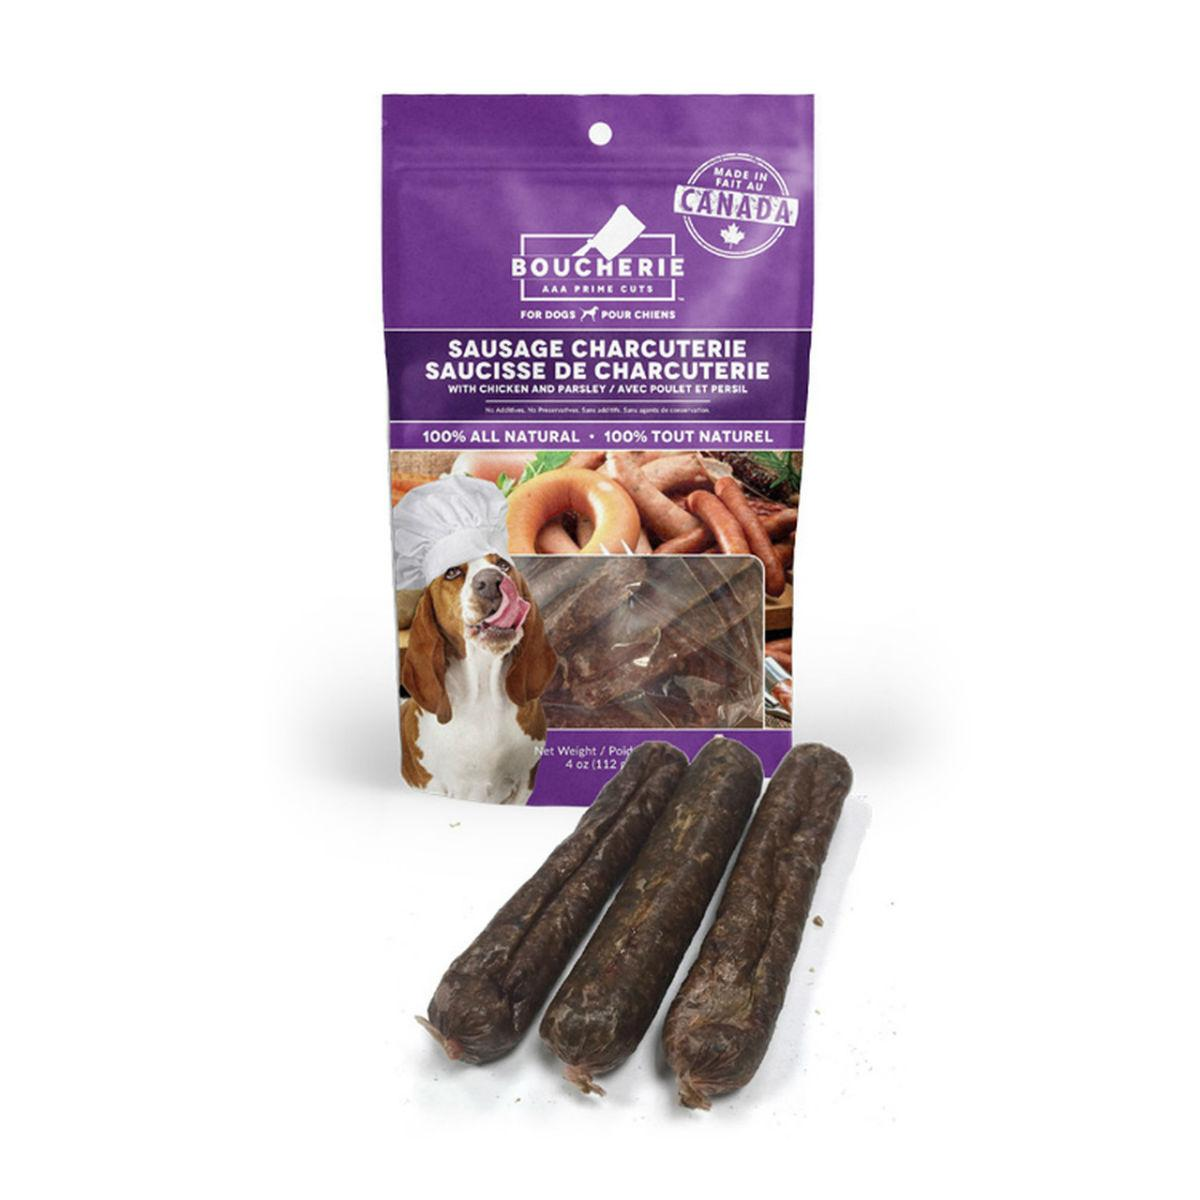 Boucherie Sausage Charcuterie with Chicken Parsley Dog Treats